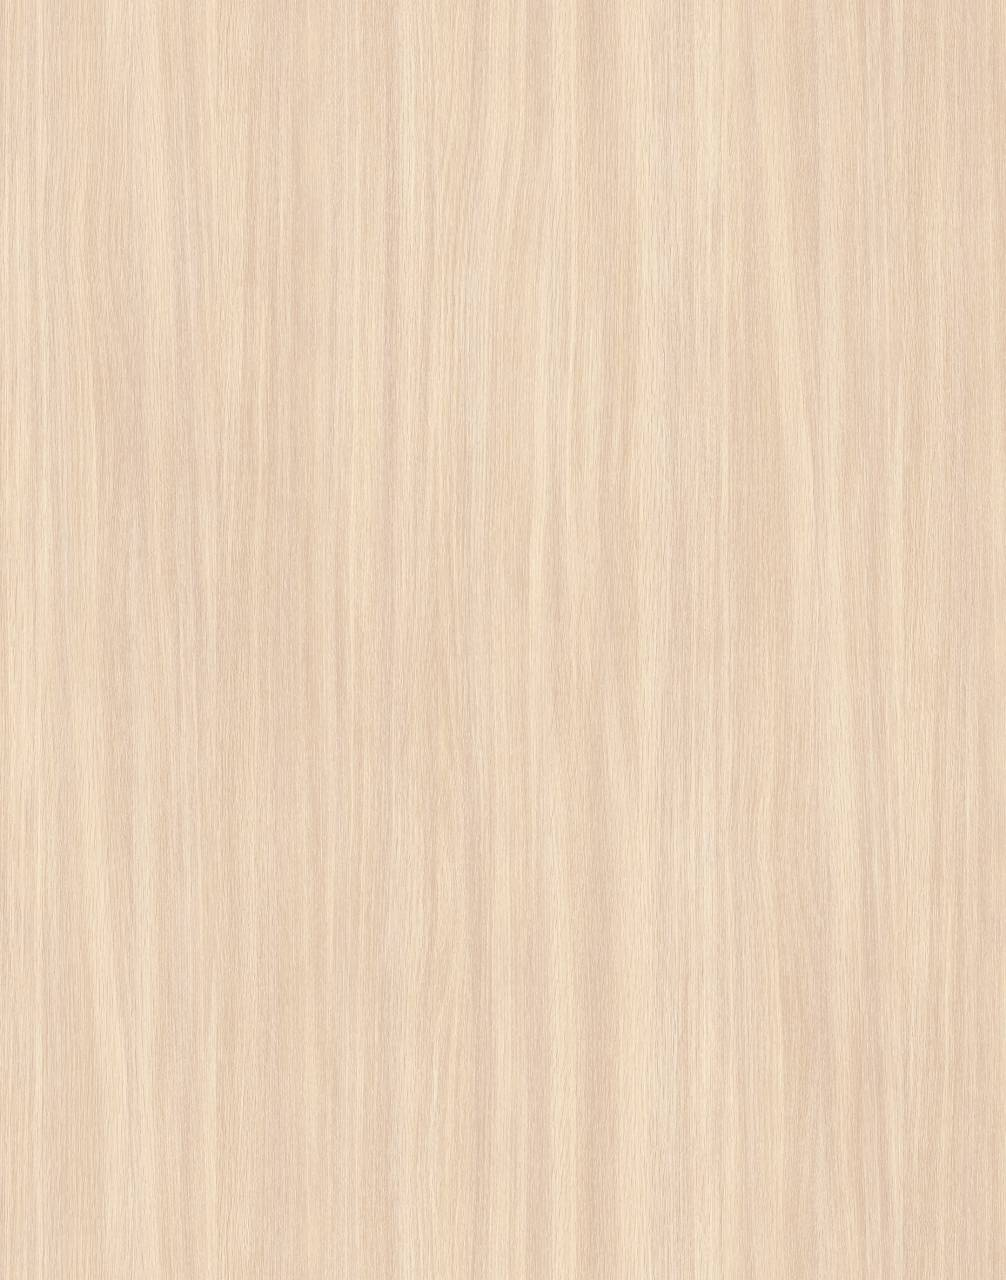 8622 Milky Oak (MF PB sample)